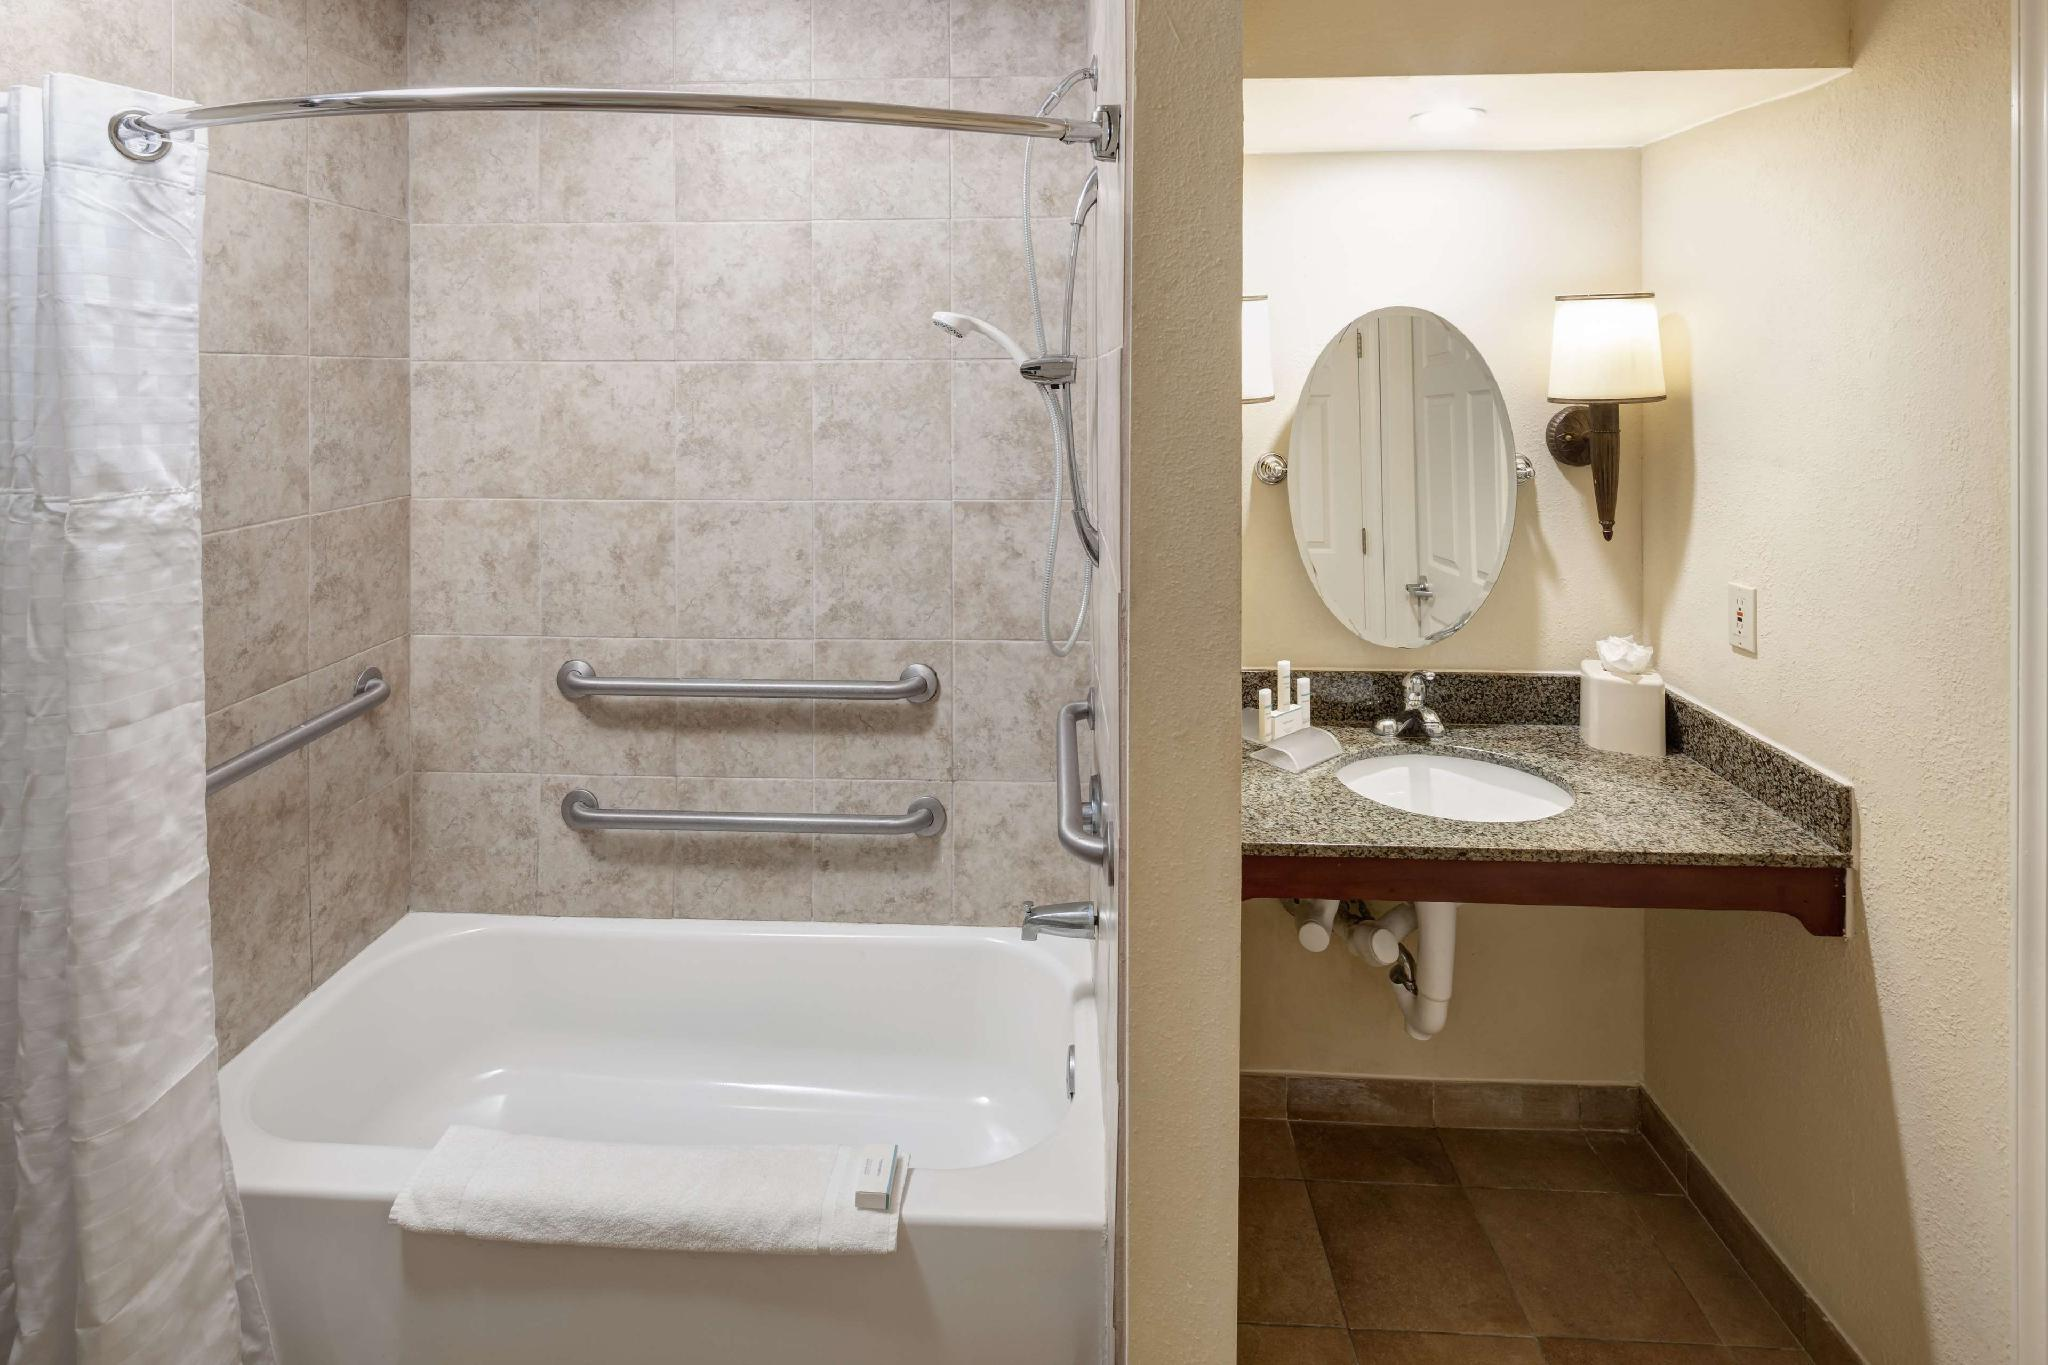 2 Double Accessible Bath Tub Suite Non-Smoking